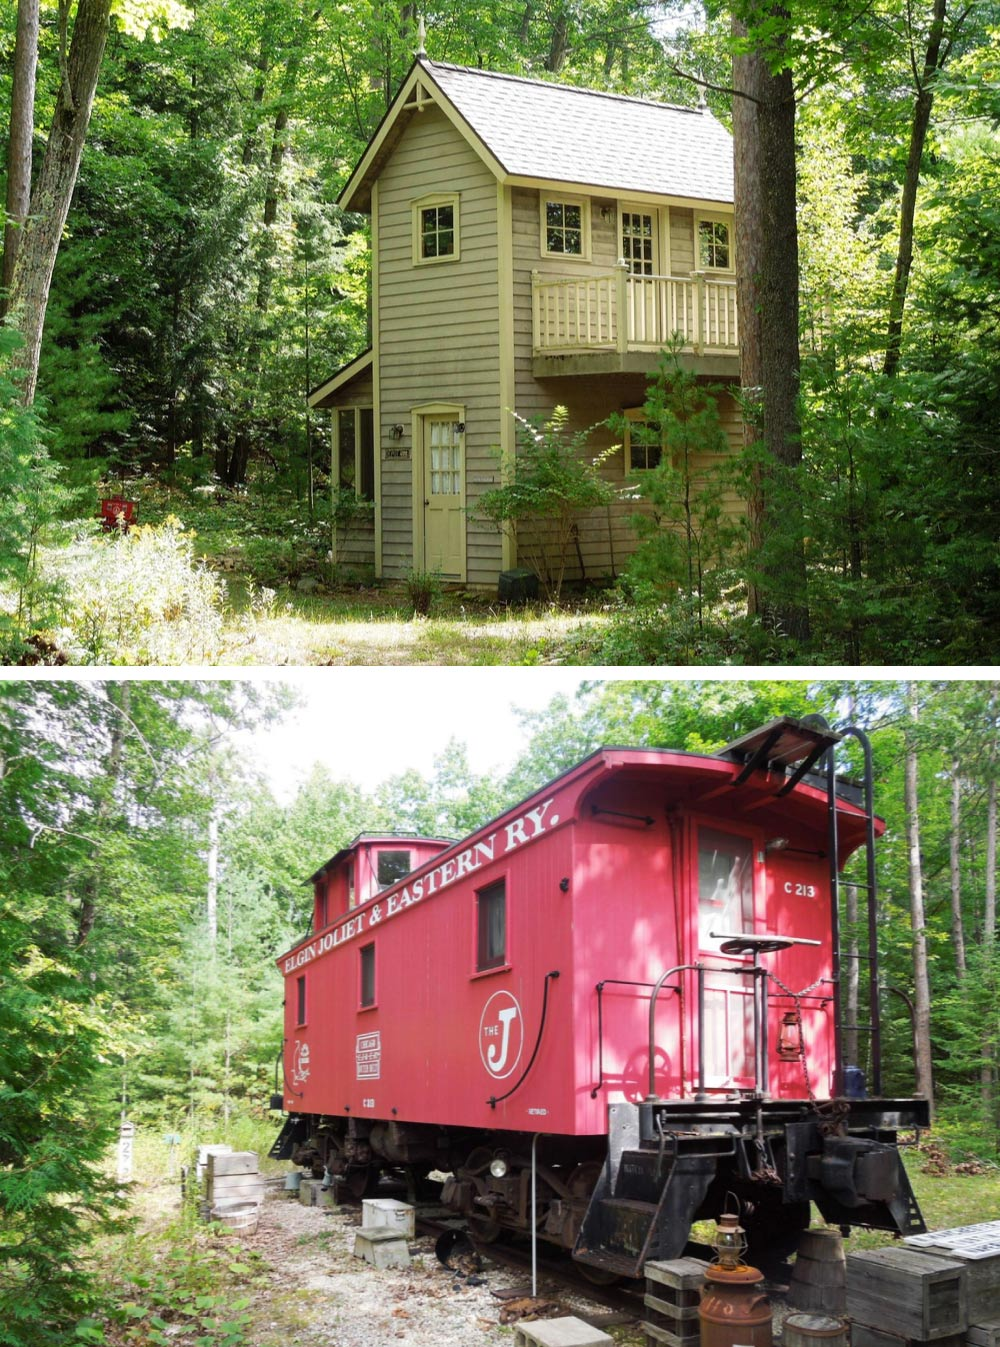 8 Homes With Converted Train Cars For Sale – Life at Home – Trulia Blog